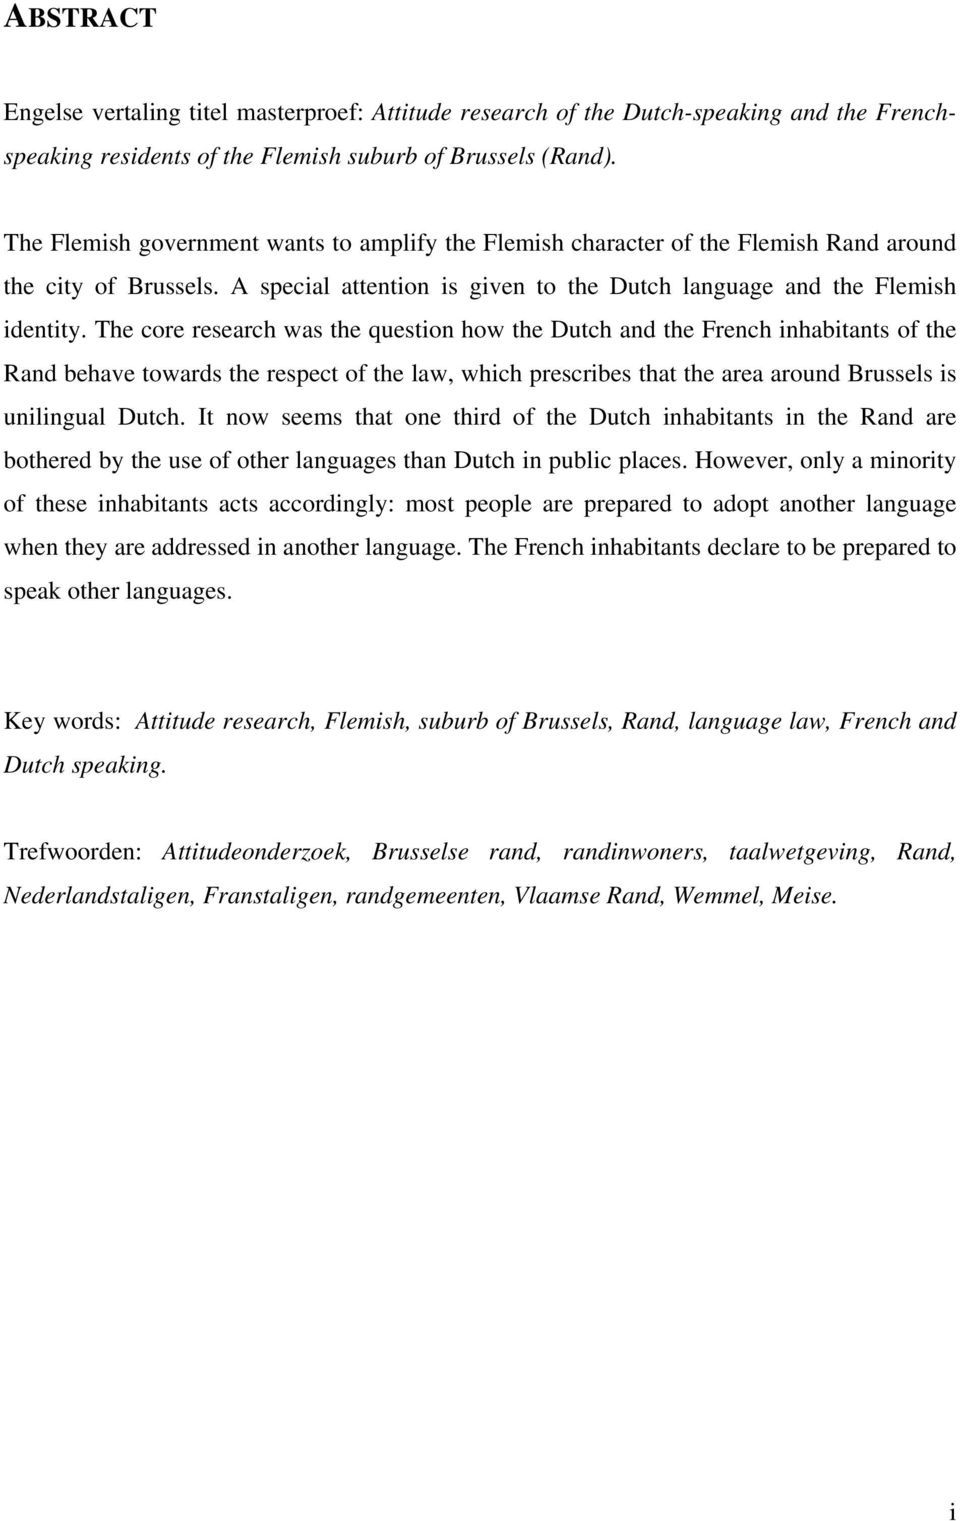 The core research was the question how the Dutch and the French inhabitants of the Rand behave towards the respect of the law, which prescribes that the area around Brussels is unilingual Dutch.